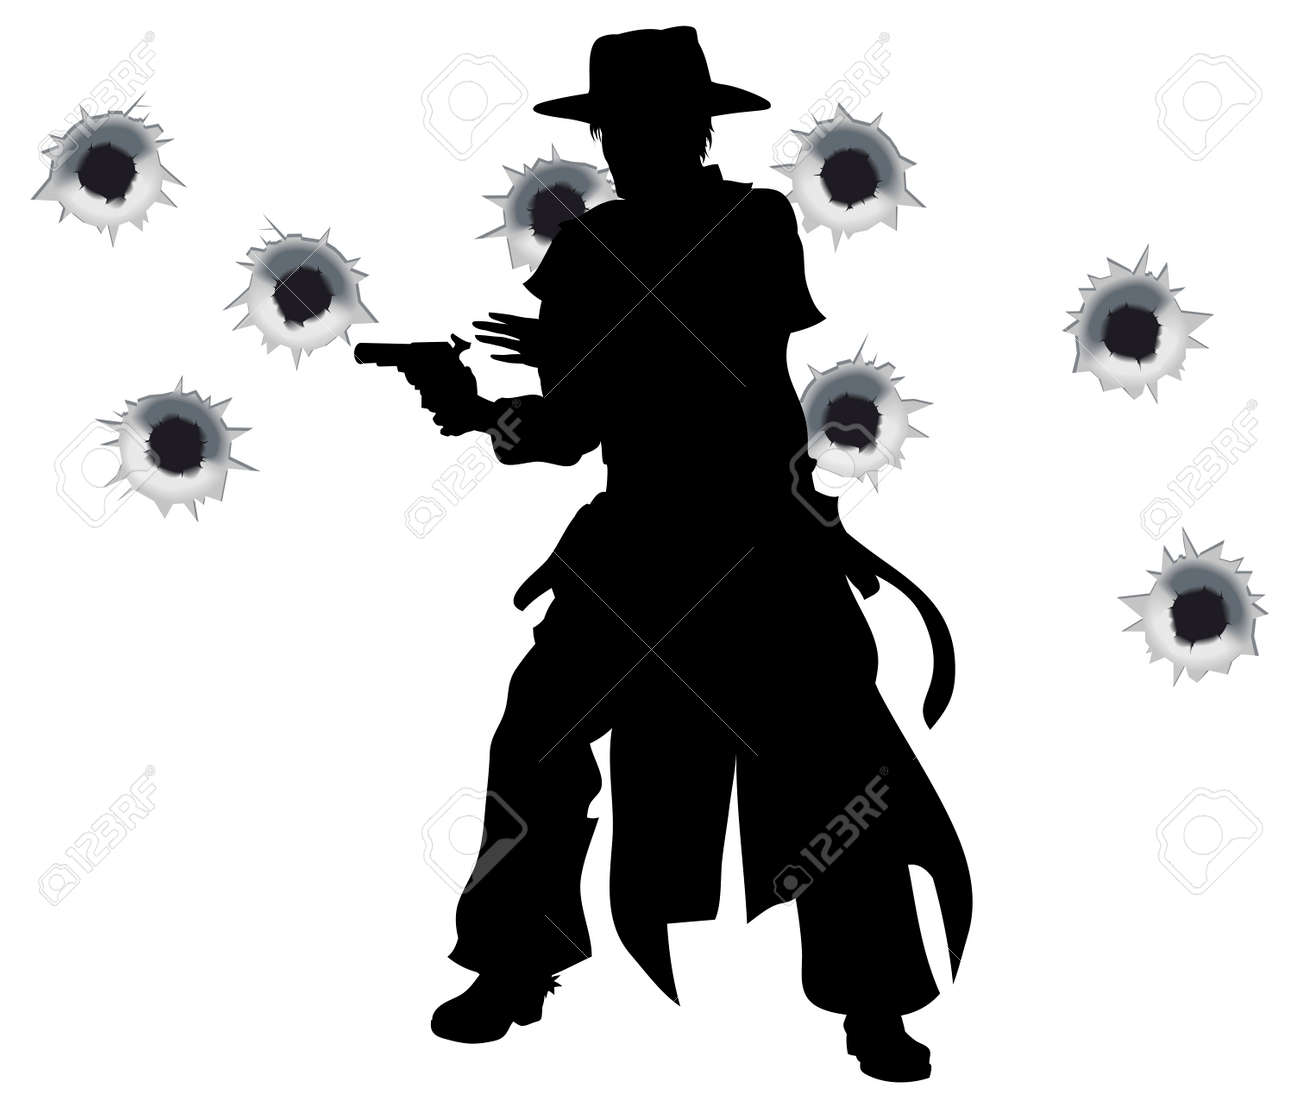 A Wild West Gunslinger Drawing And Firing His Gun In A Shootout